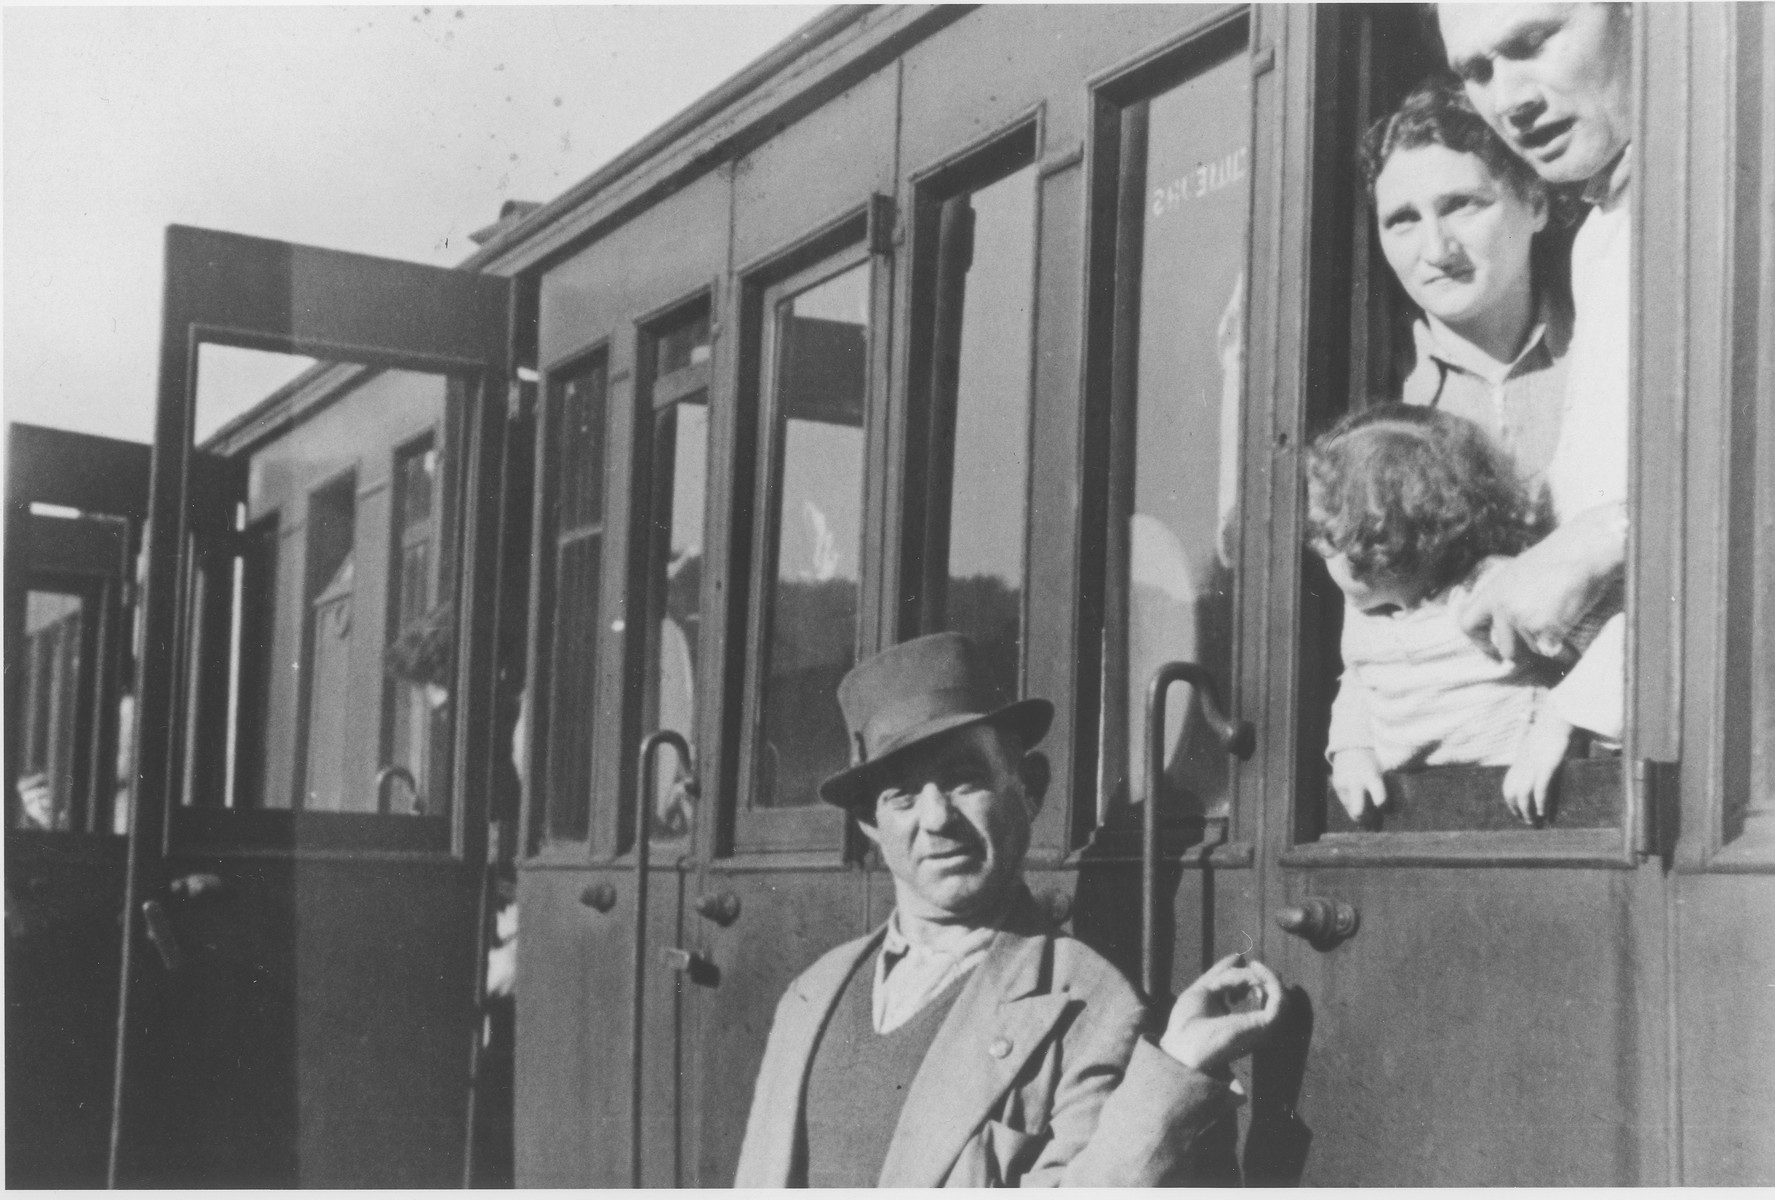 Former Exodus passengers look out from a Bricha train on their return trip to France following their internment in the Poppendorf displaced persons camp.